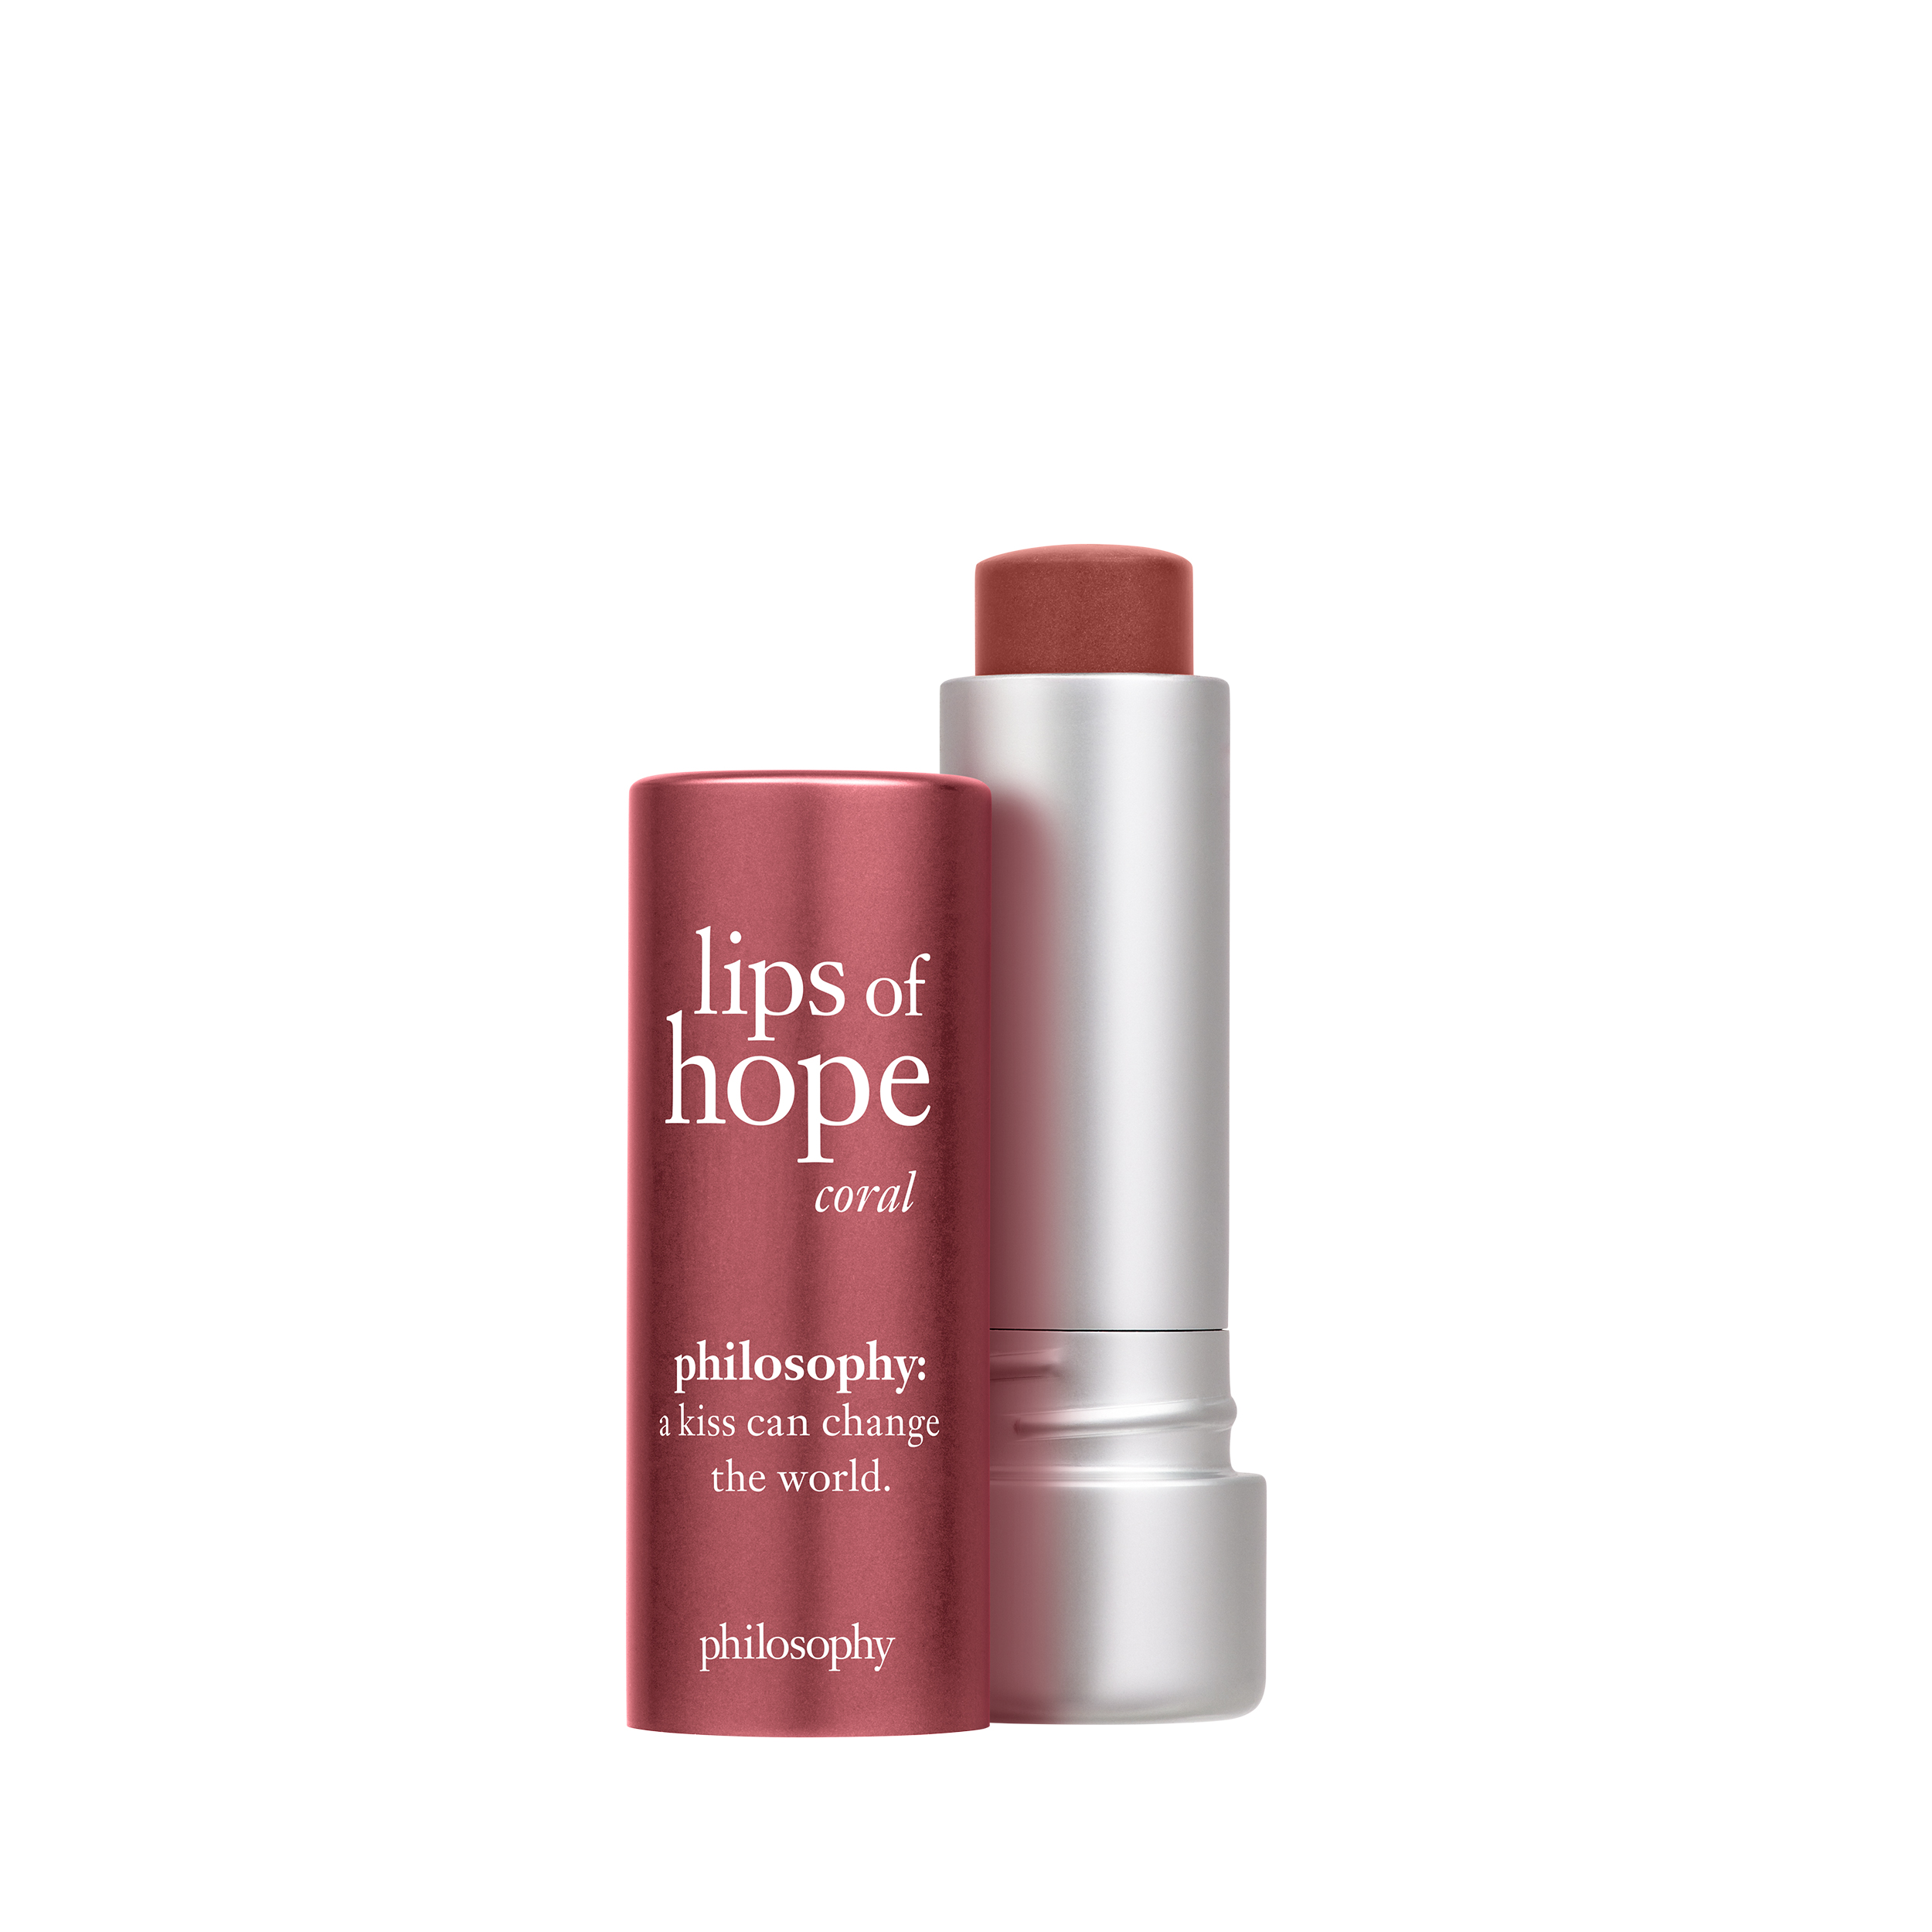 philosophy, lips of hope coral